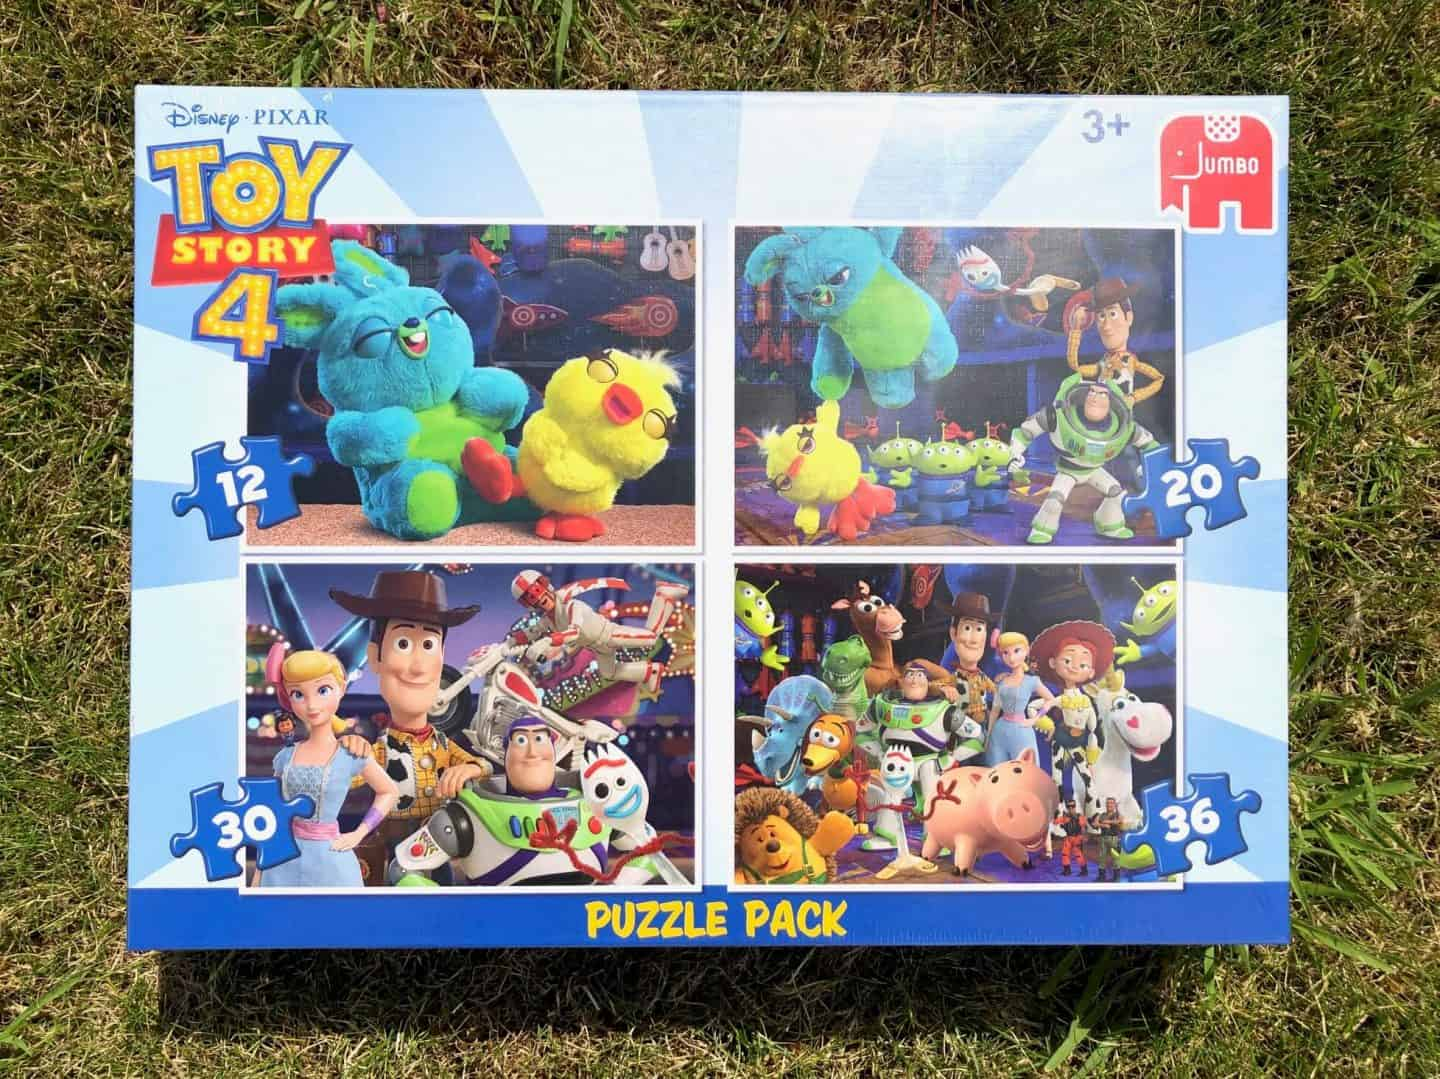 Toy Story 4 jigsaw puzzles from Jumbo. - 4 in 1 puzzle pack